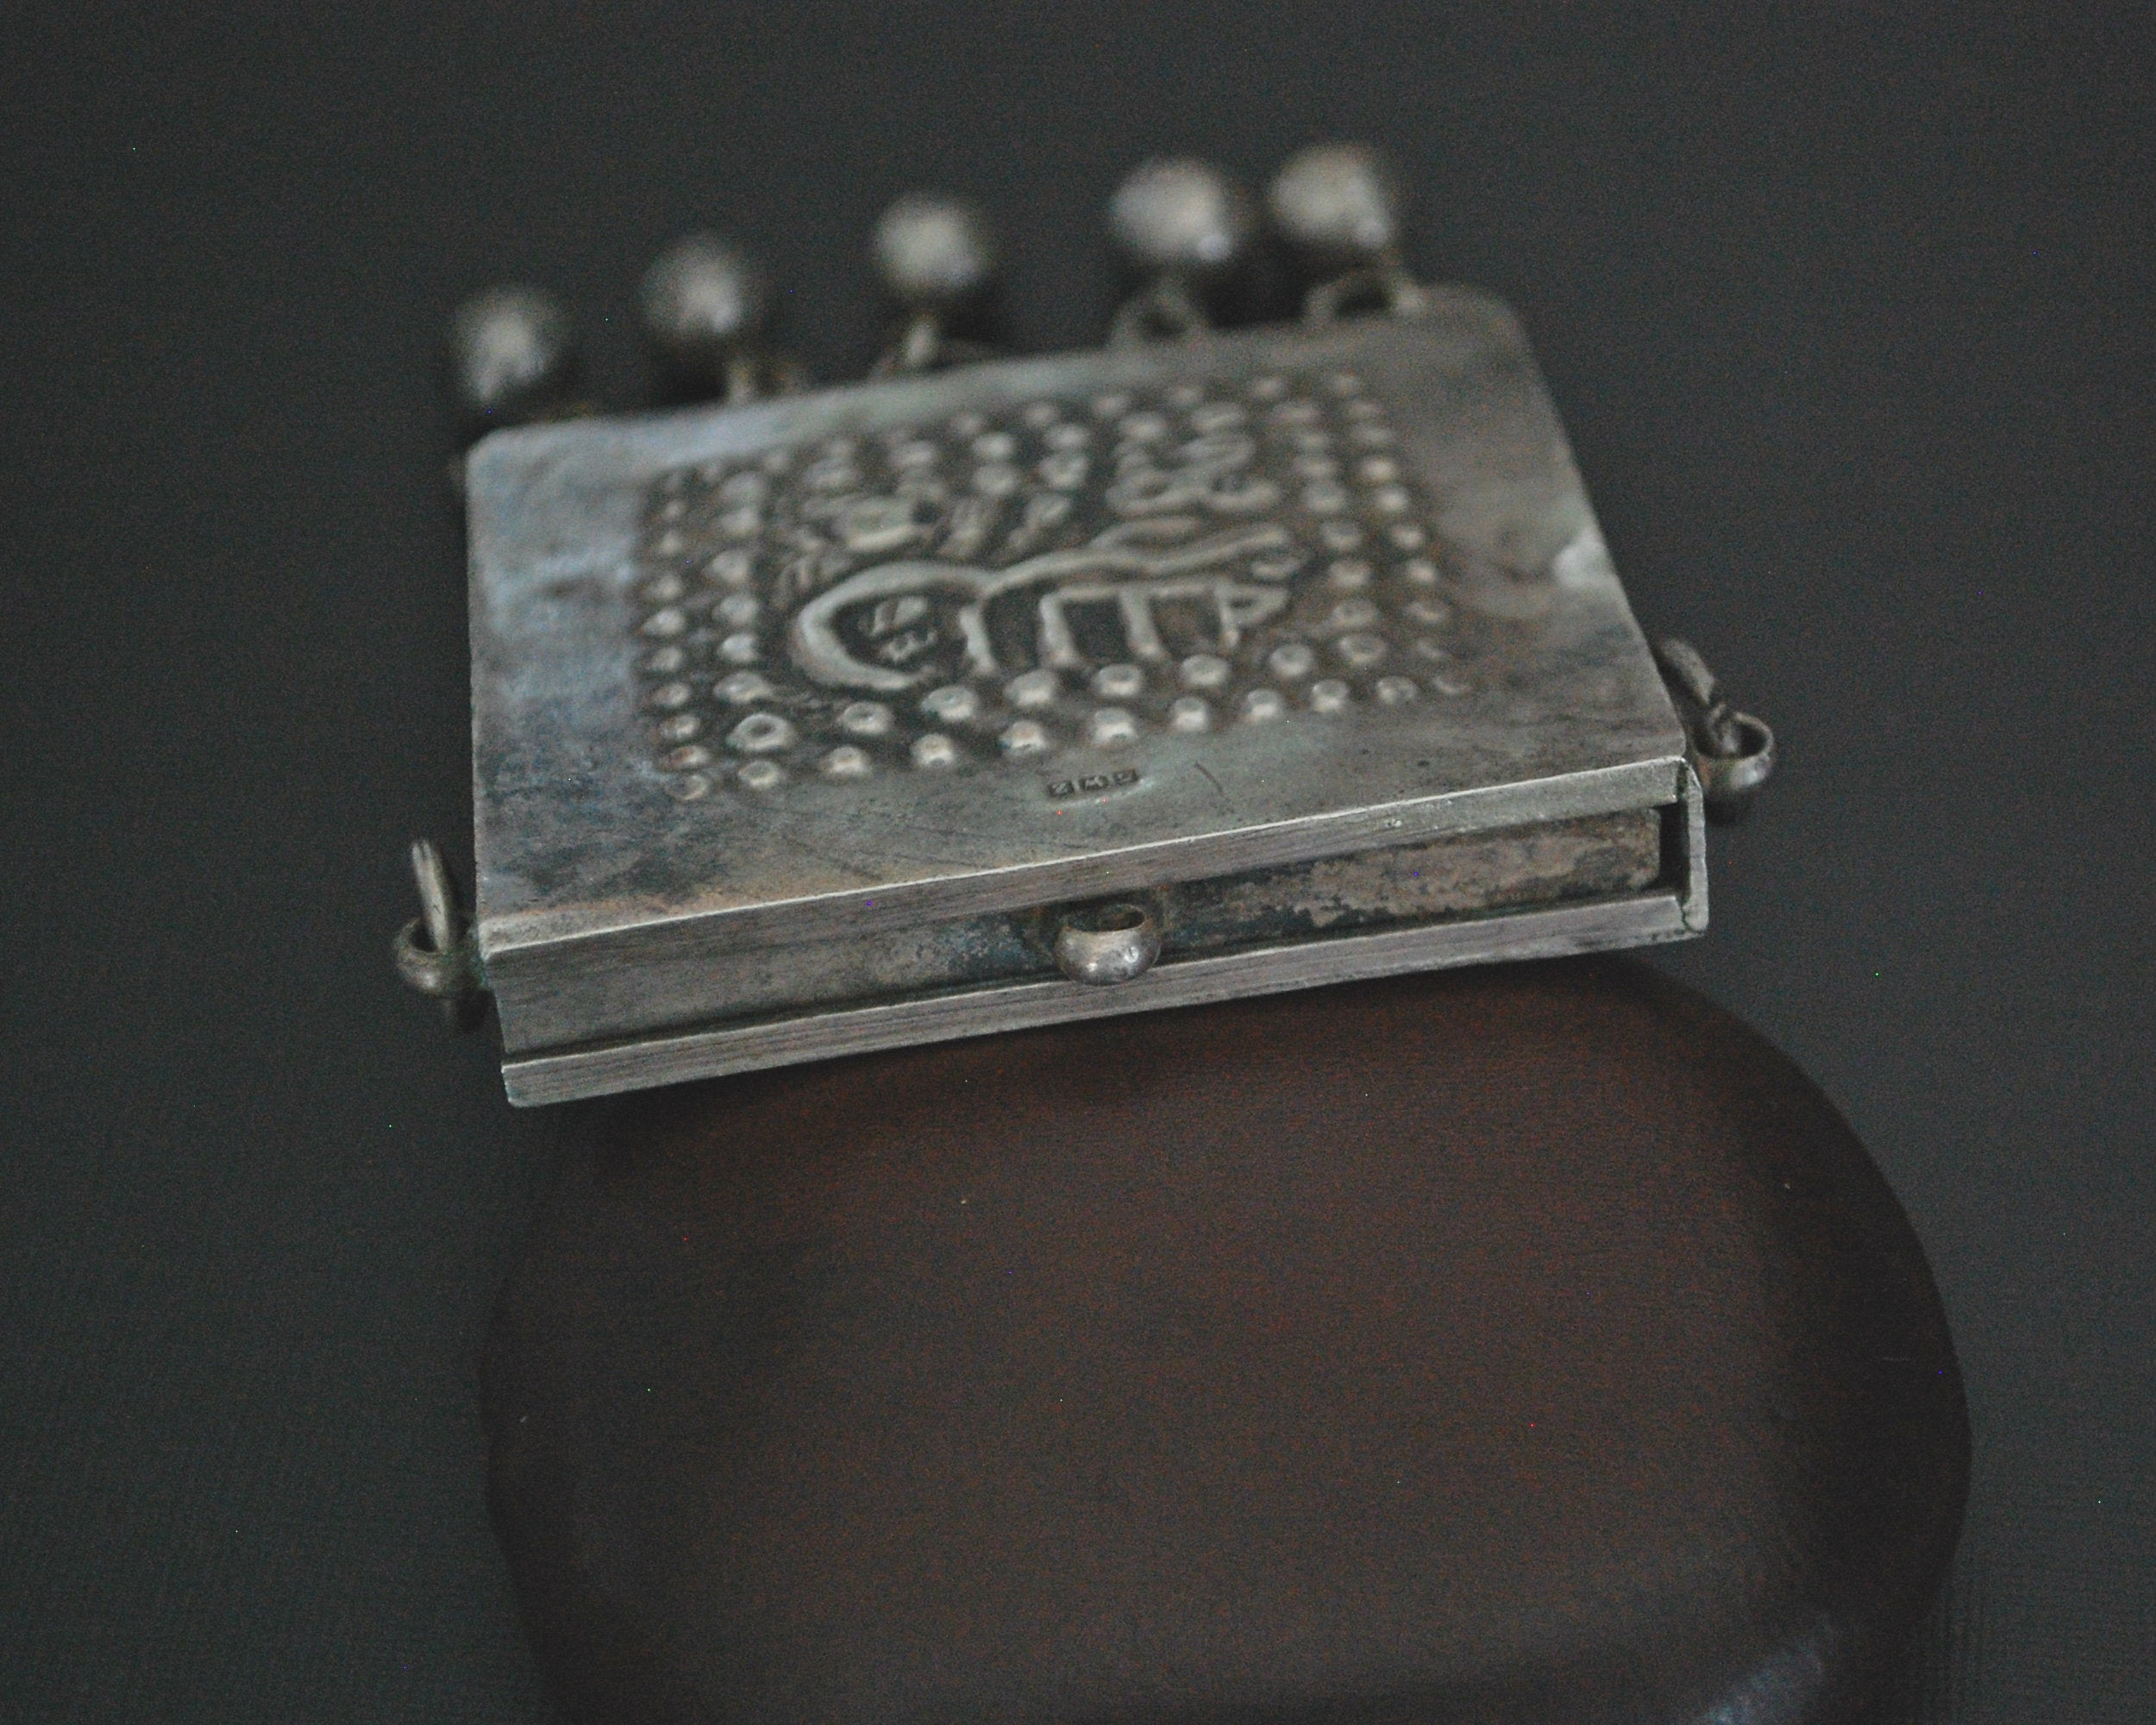 Egyptian Zar Amulet Pendant Box with Bells